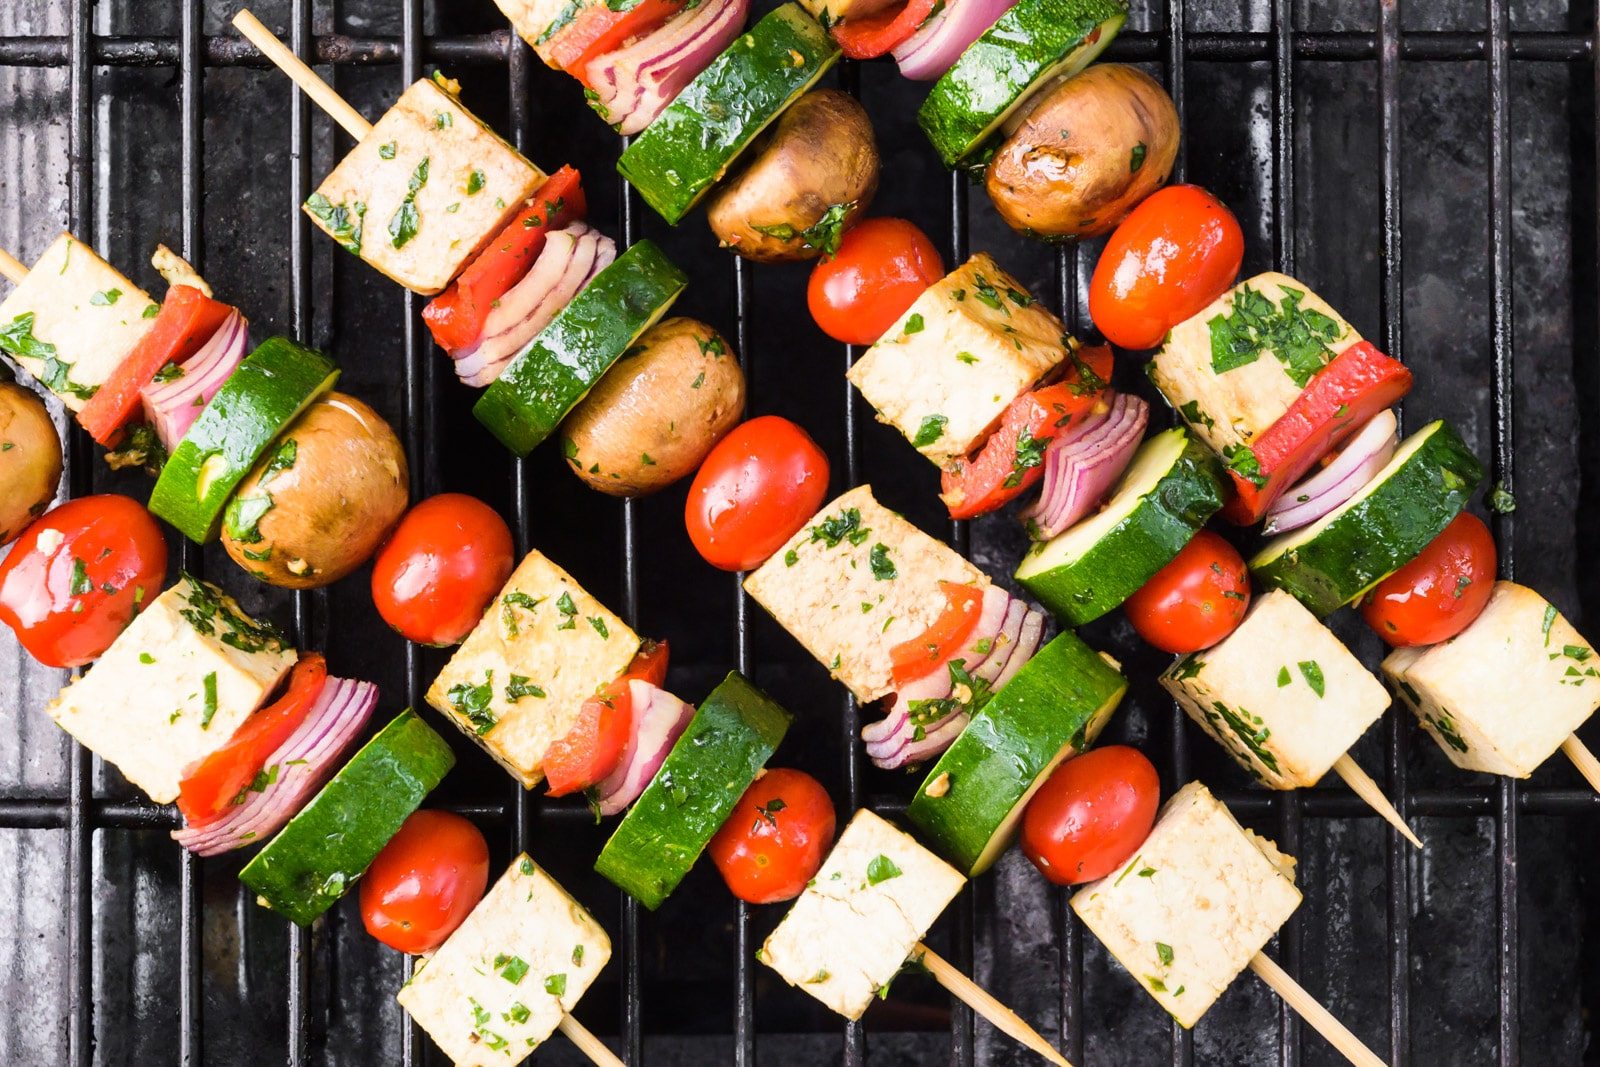 Looking down on vegan skewers on the grill. There are tofu cubes, sliced zucchini, cherry tomatoes, and more.